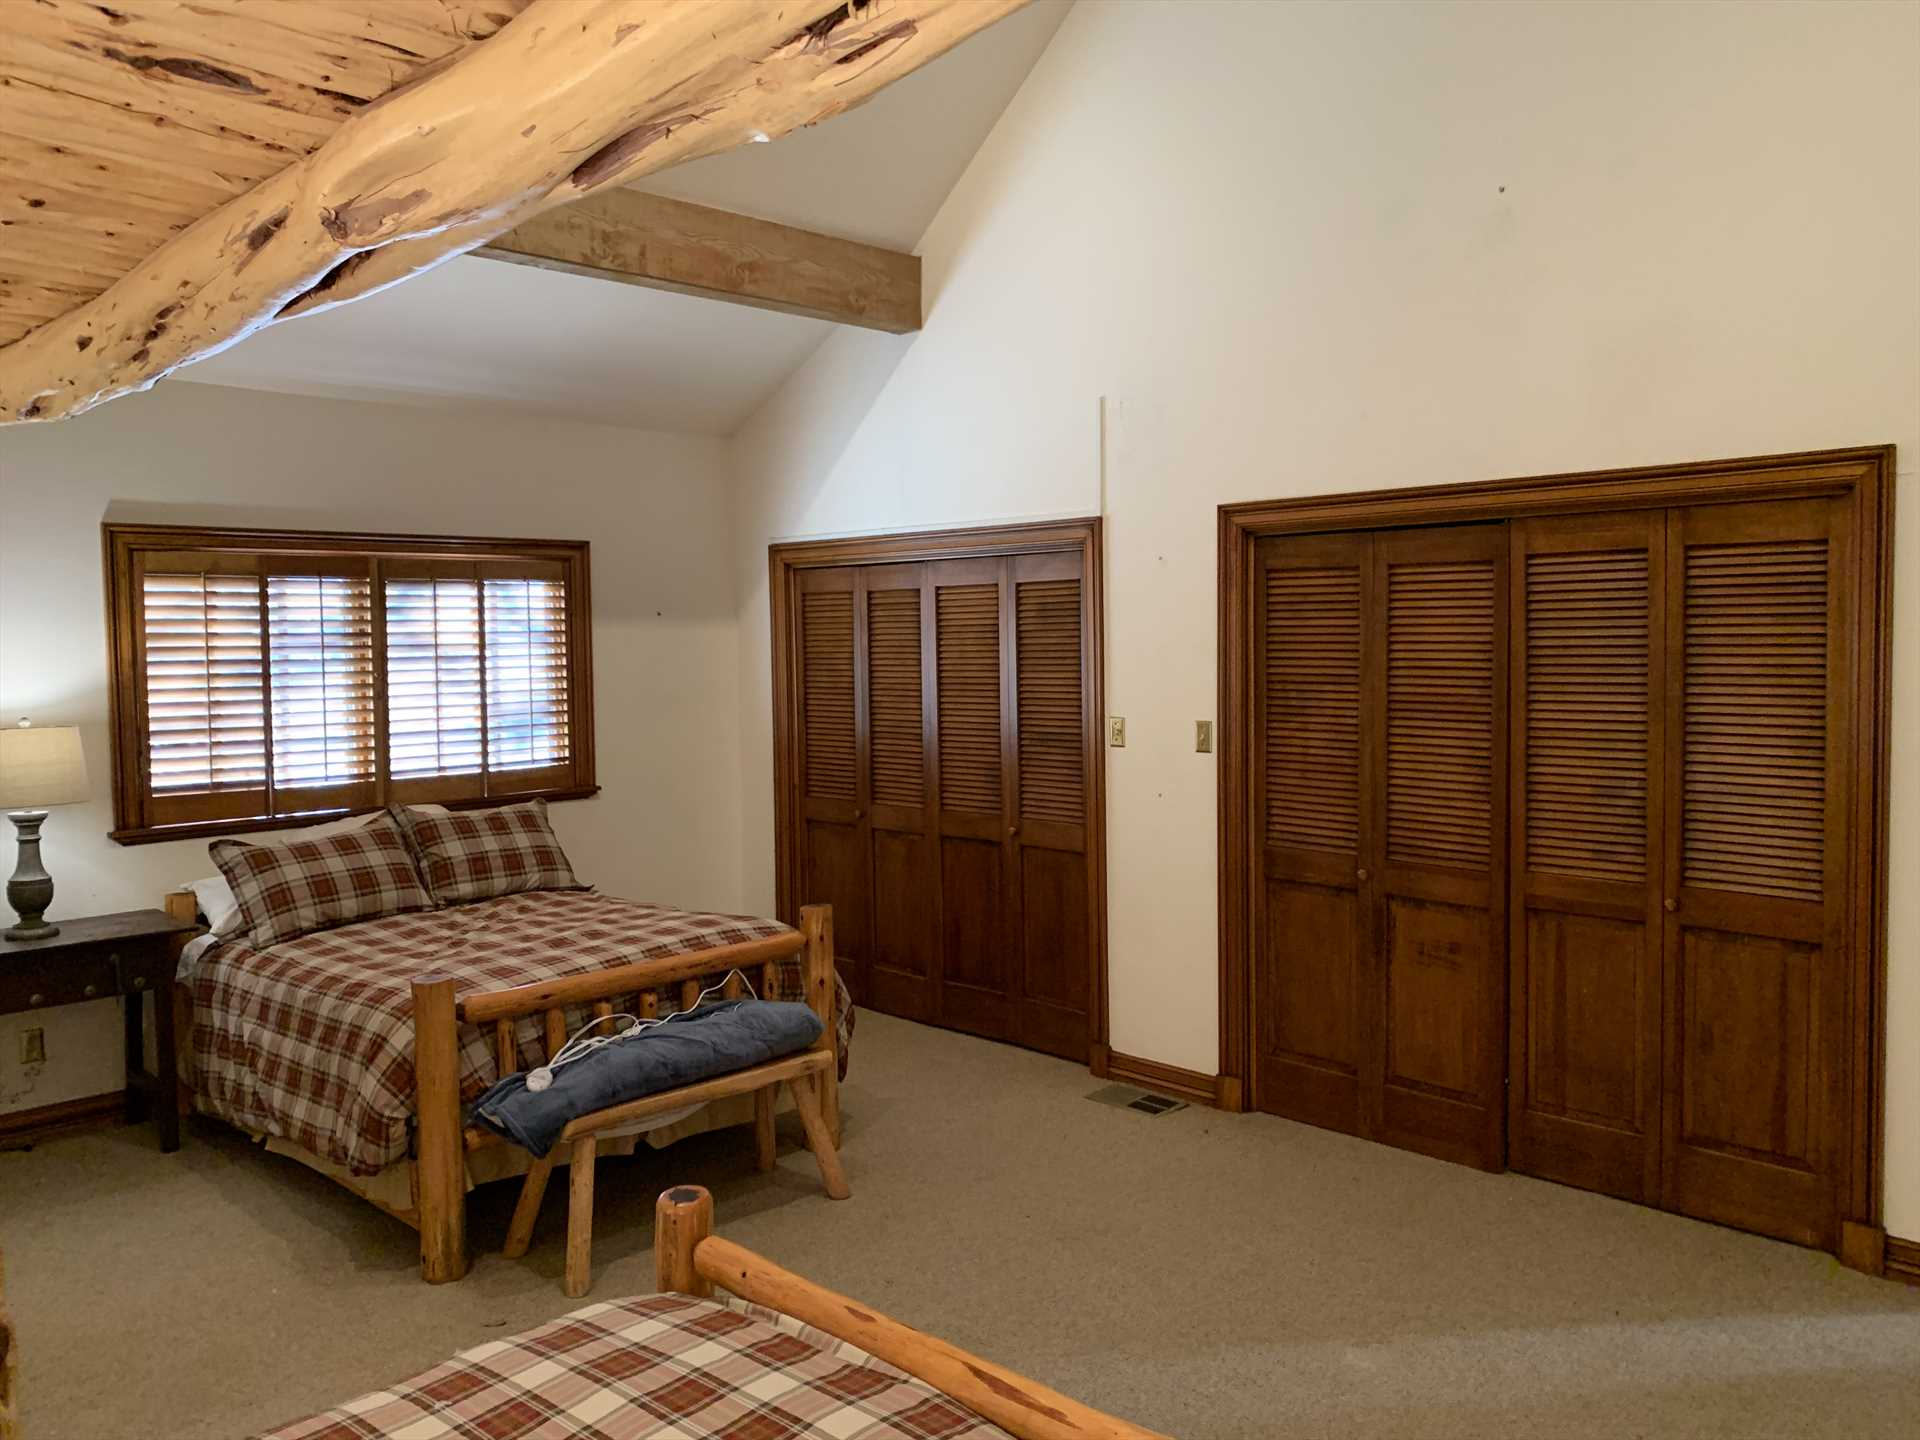 With the option of two additional roll-away beds, the Homestead has room to comfortably sleep up to 14 people-and all beds come with clean and comfortable linens.